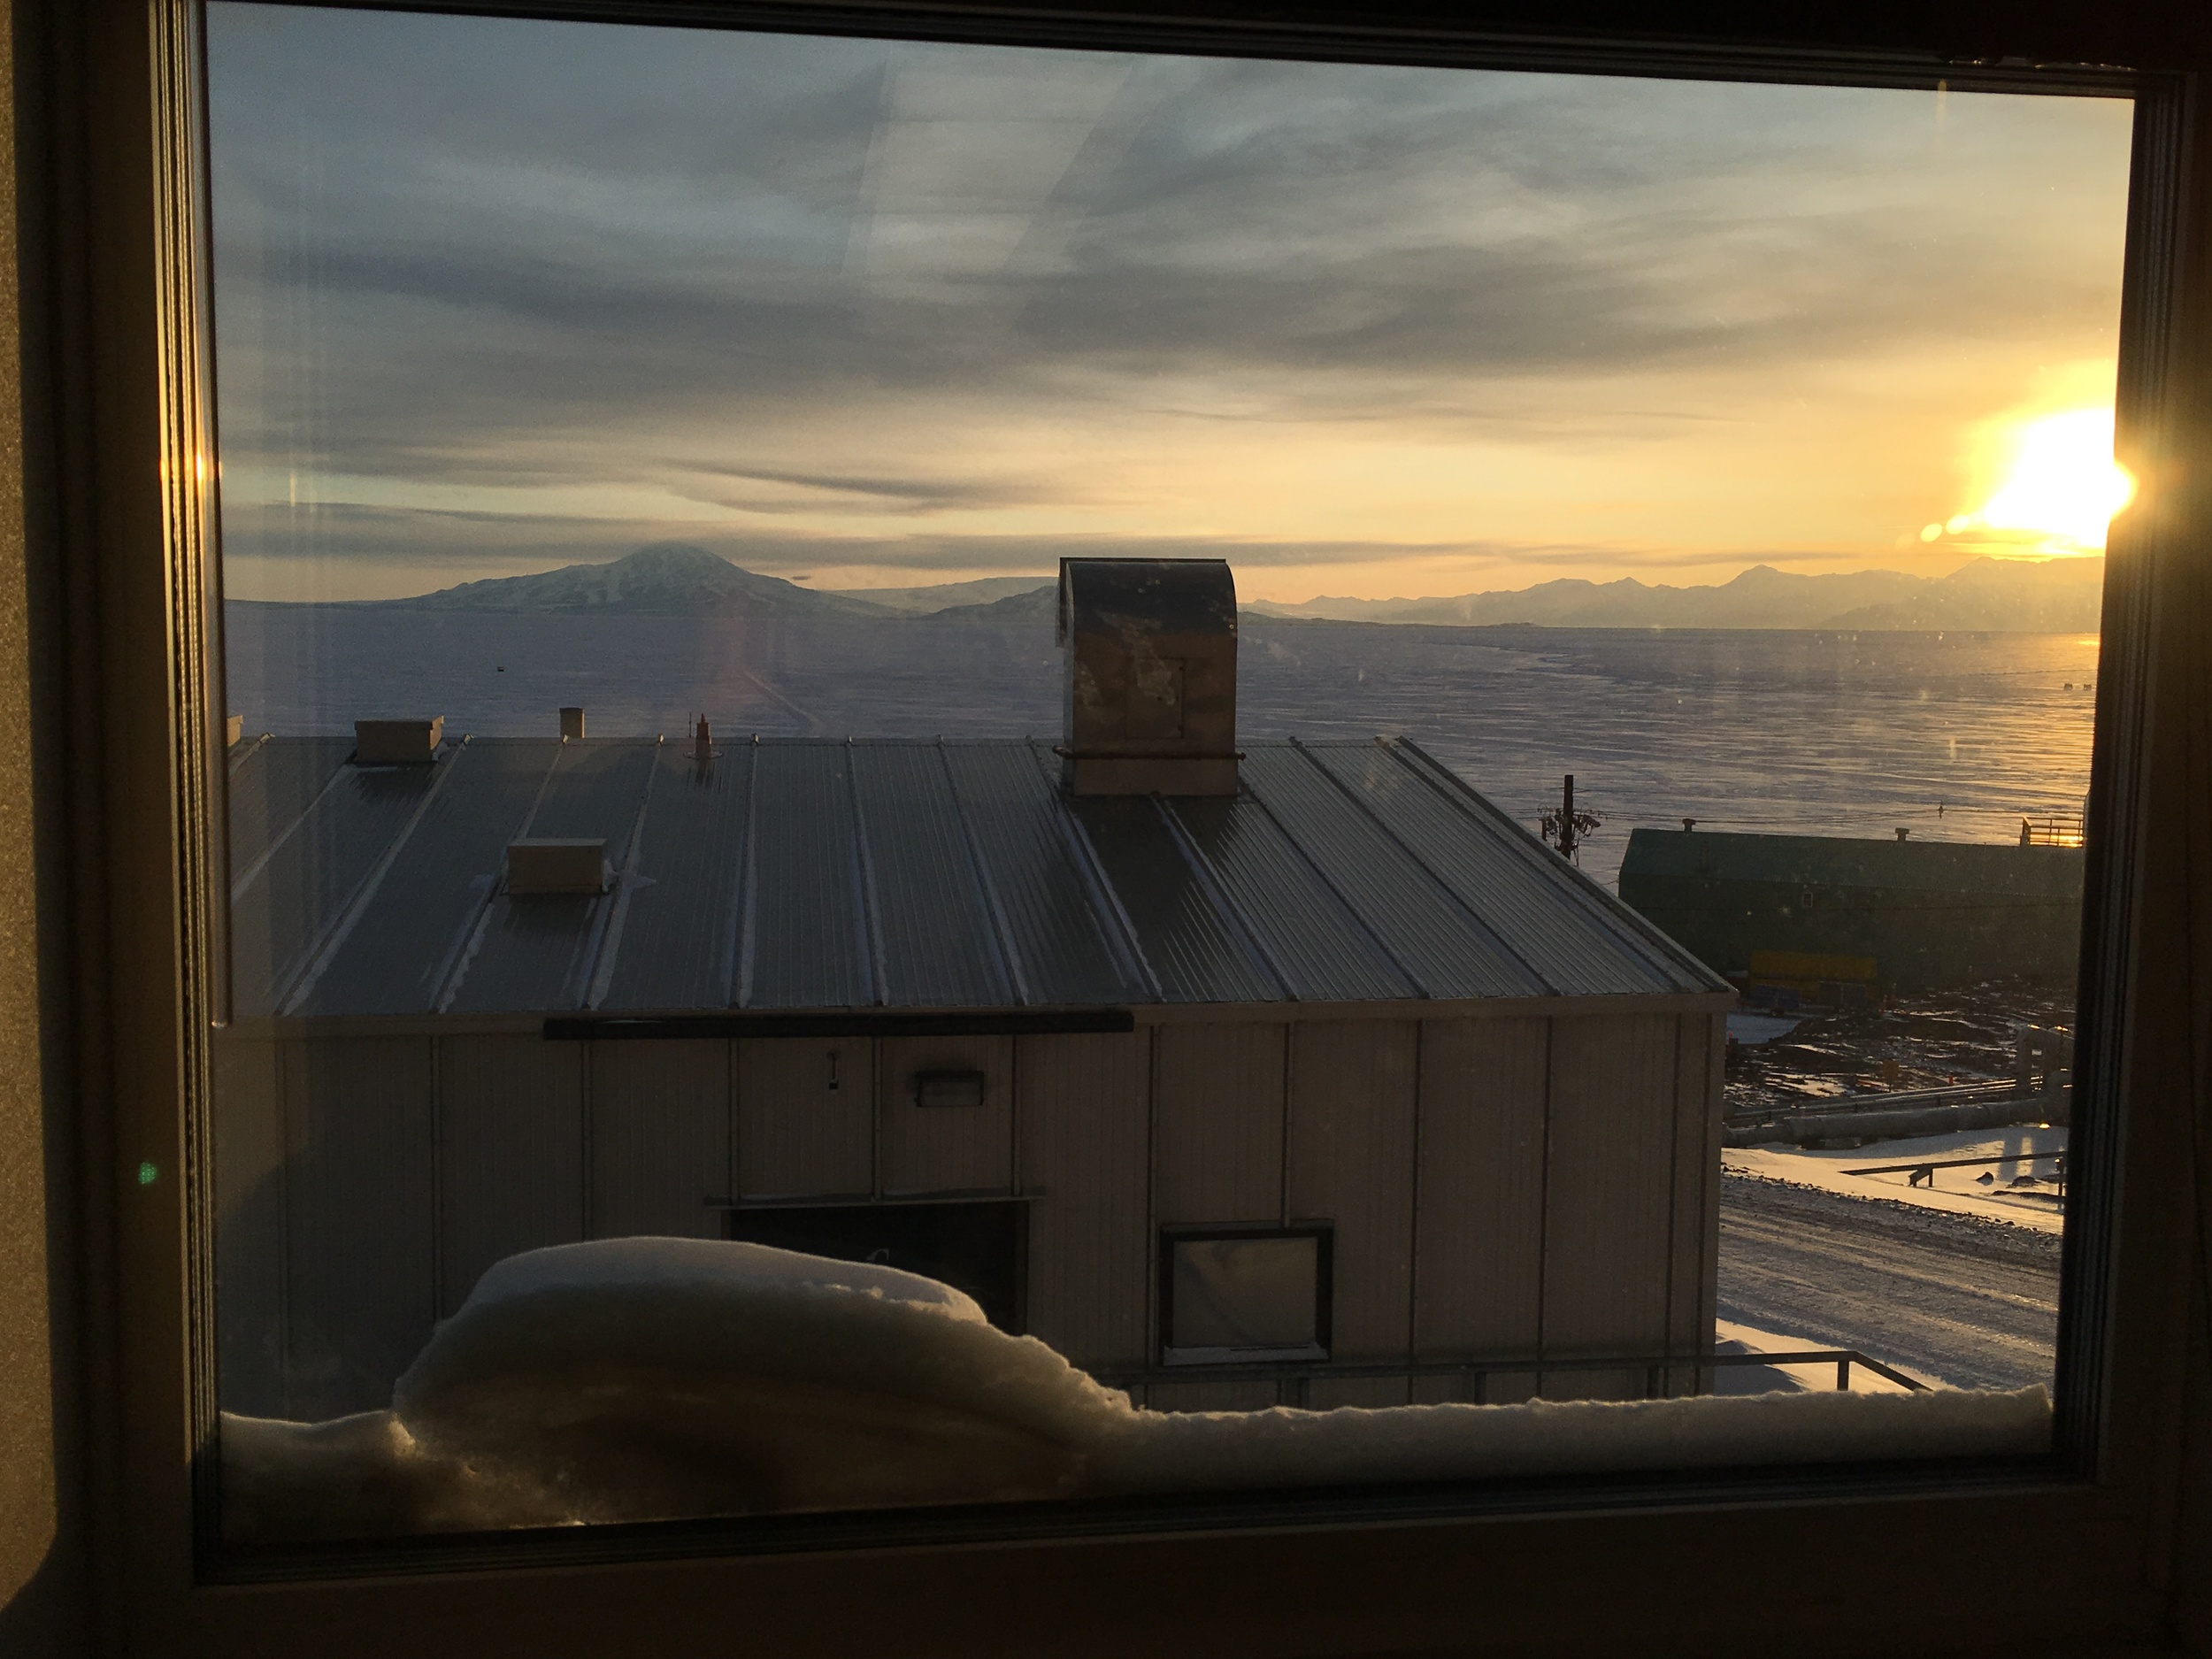 McMurdo Sound, Mt. Discovery, and the Royal Society Range viewed out the window of our lab in the Crary building.  The last sunset of the year is on Saturday Oct. 24th at 1:09 AM, after which we will have 24-hour sunlight.